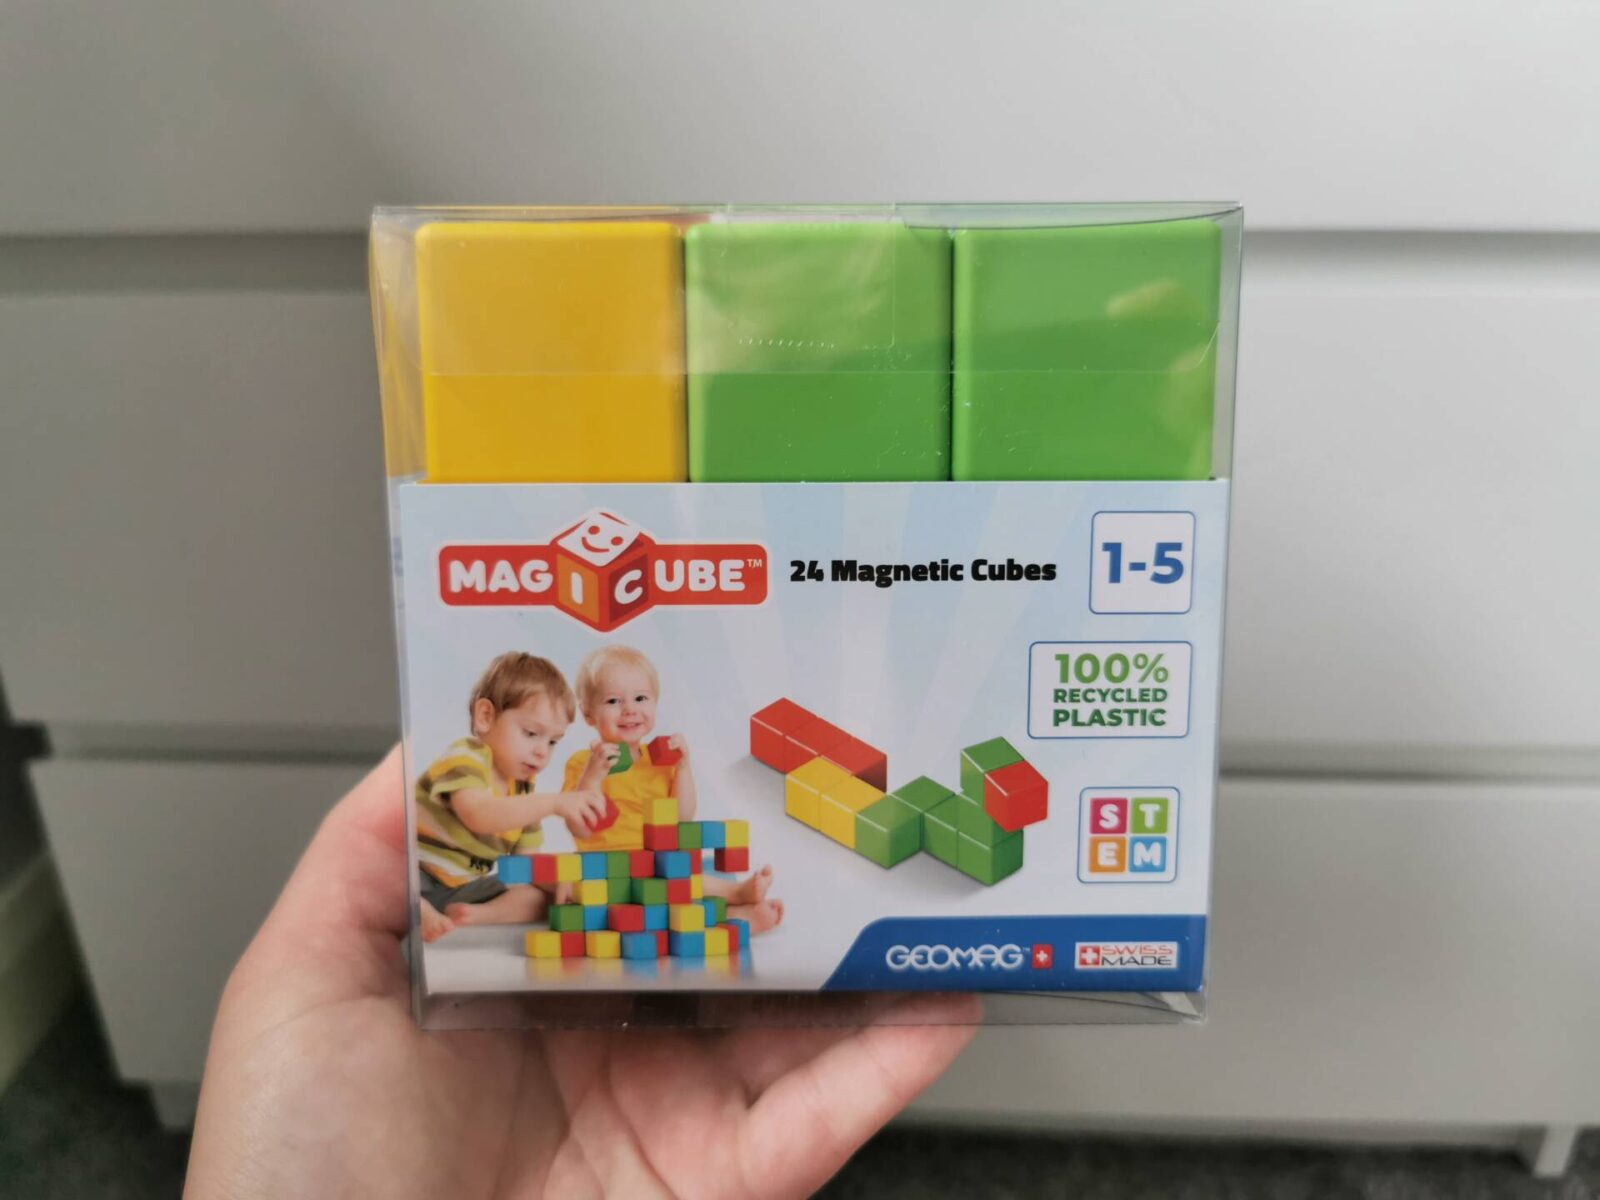 Geomag Magicube Magnetic Blocks review